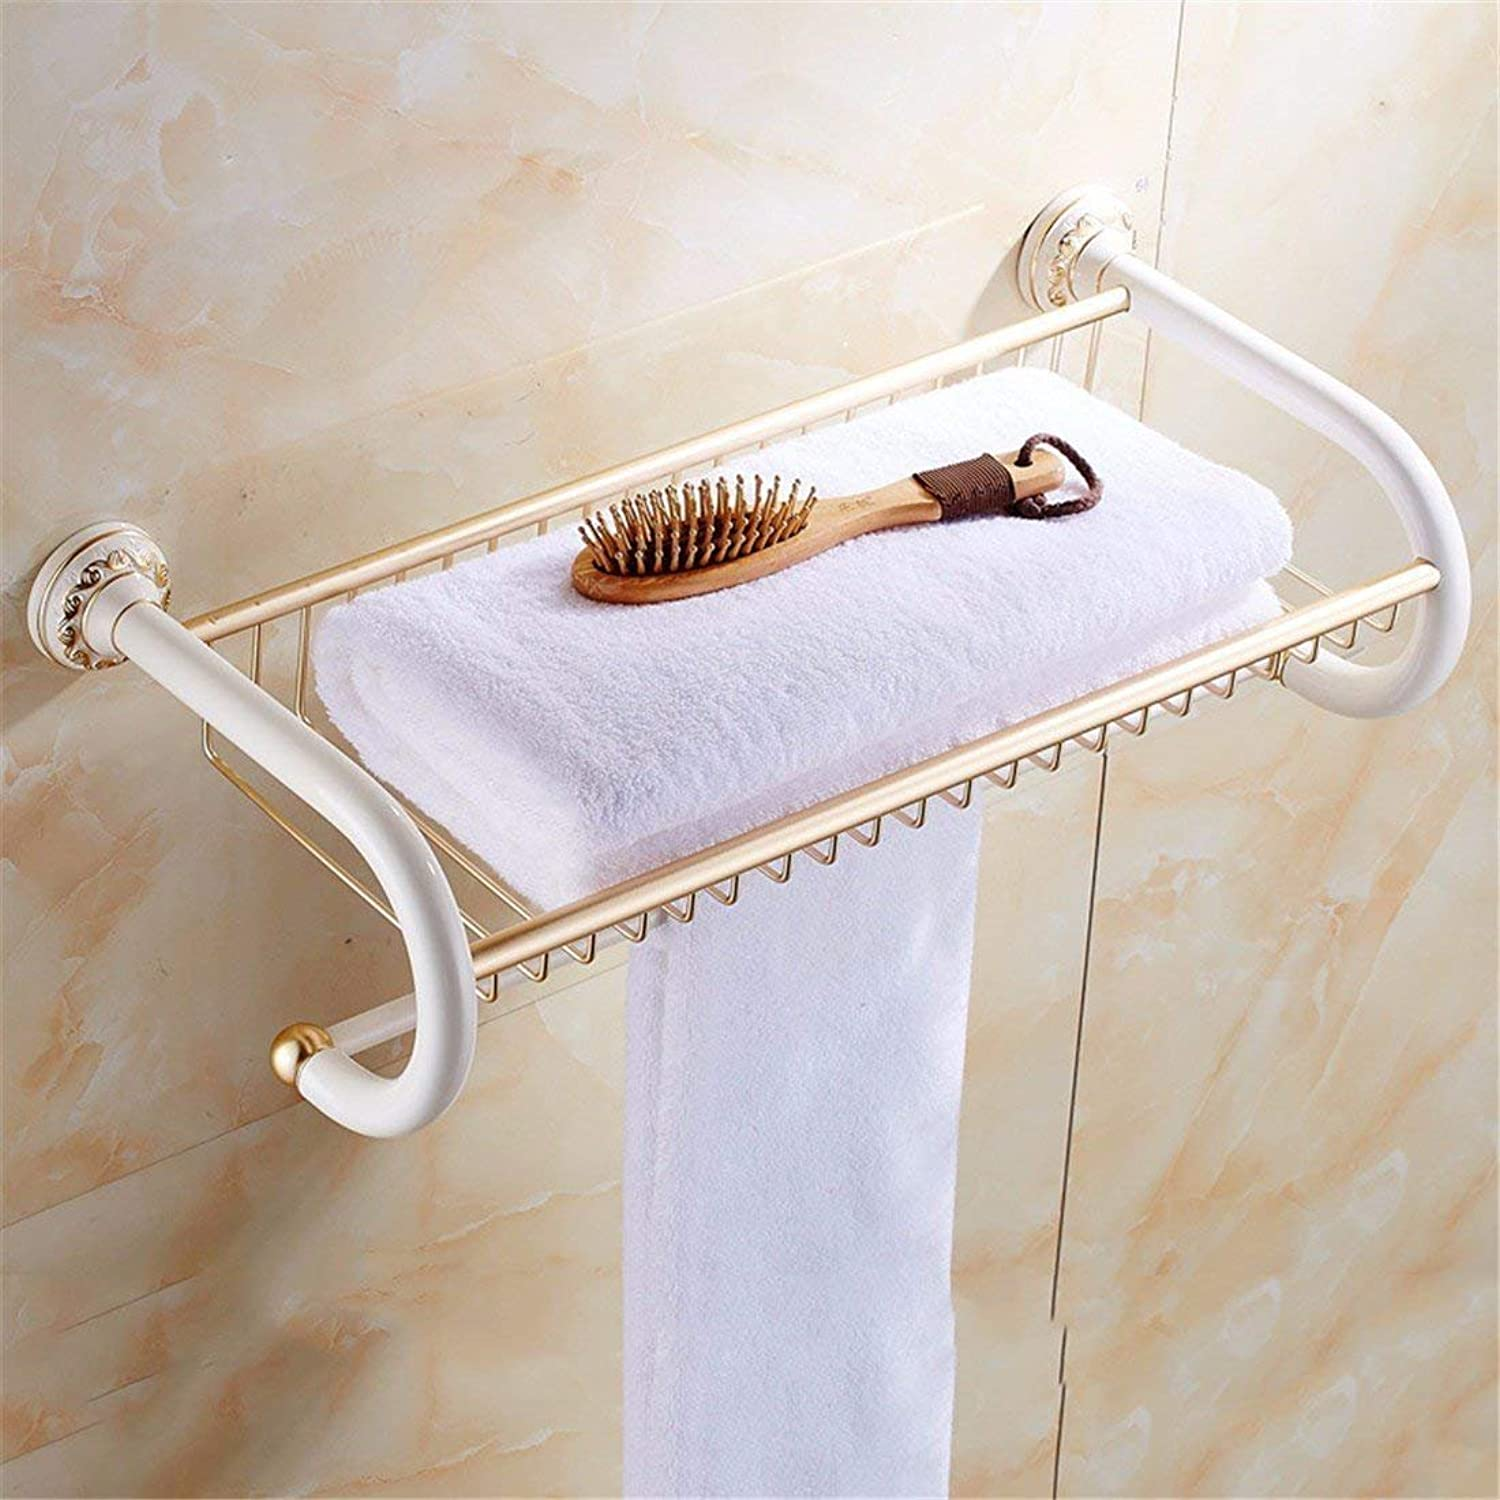 Lacquer of European Style of Aluminum White Costume Accessories of Baths Dry-Towels Dry-Towels,